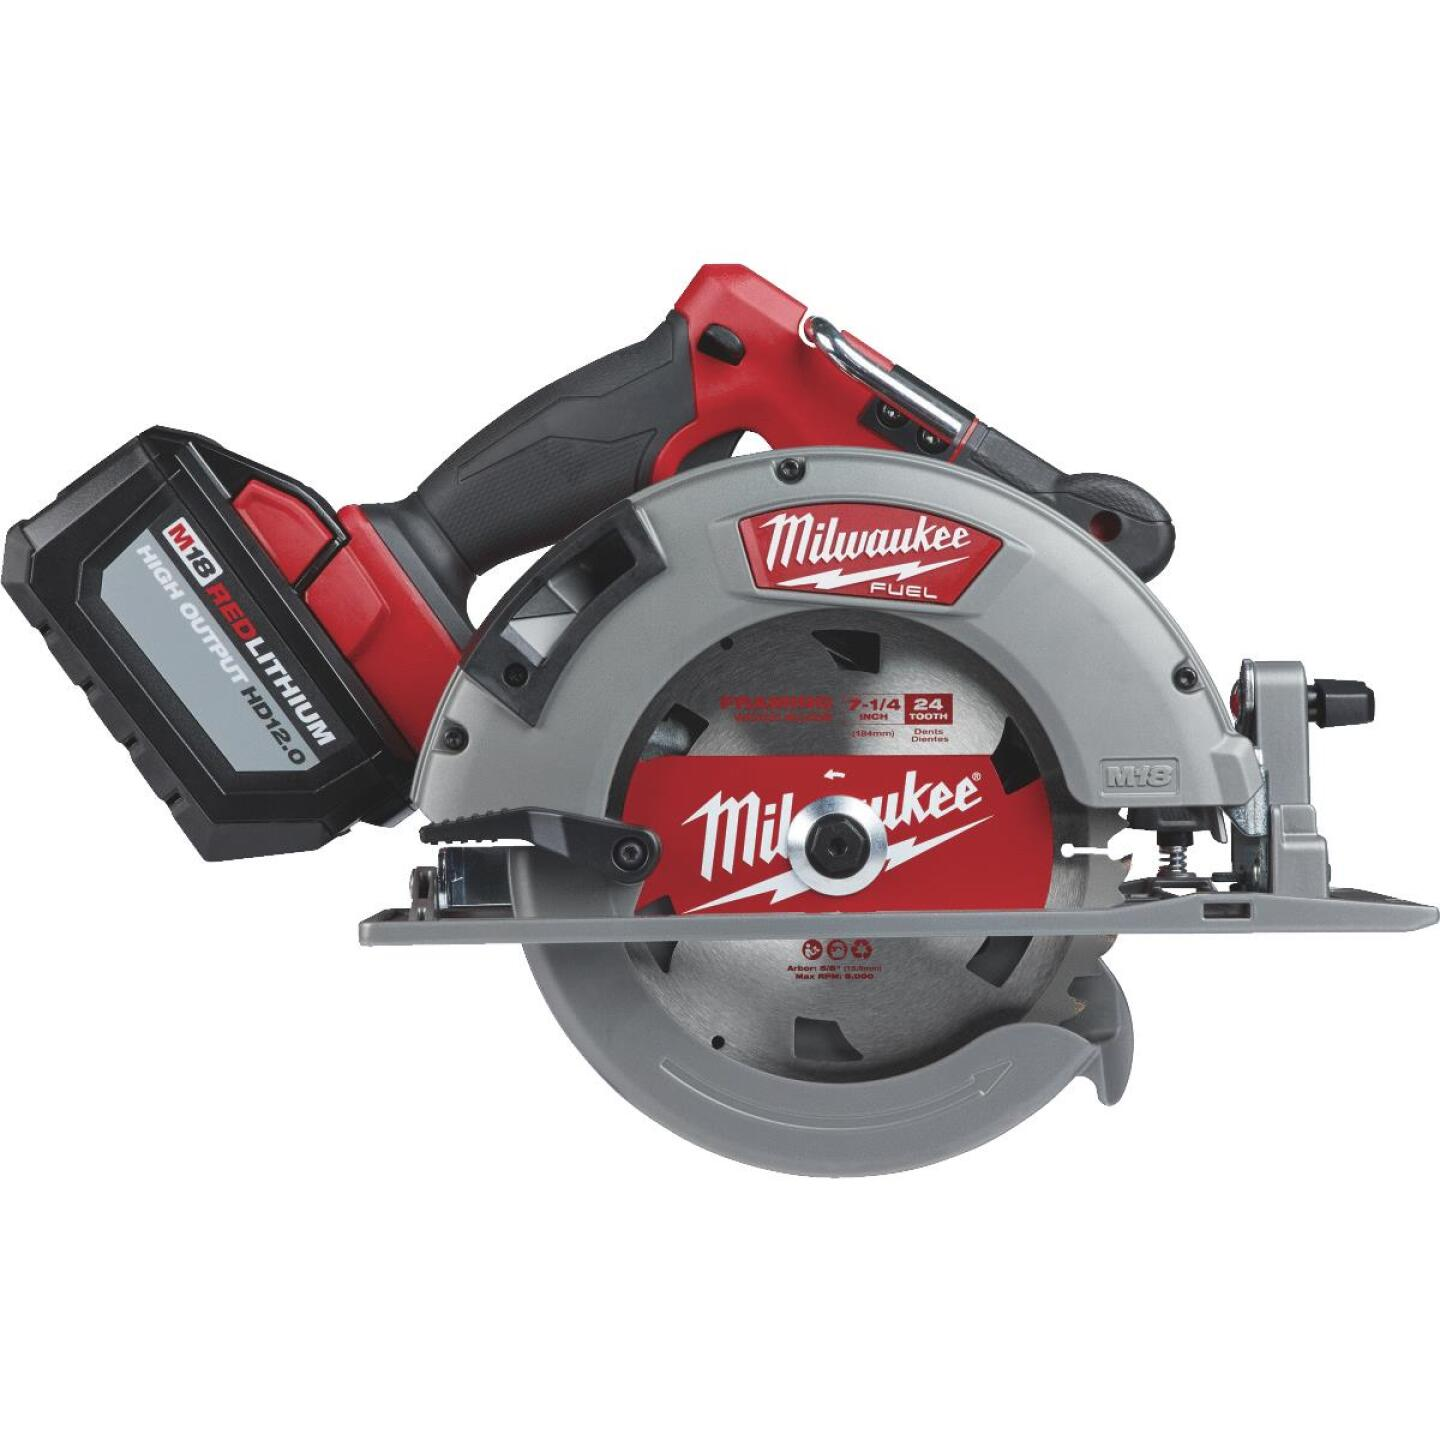 Milwaukee M18 FUEL 18 Volt Lithium-Ion Brushless 7-1/4 In. Cordless Circular Saw Kit Image 1